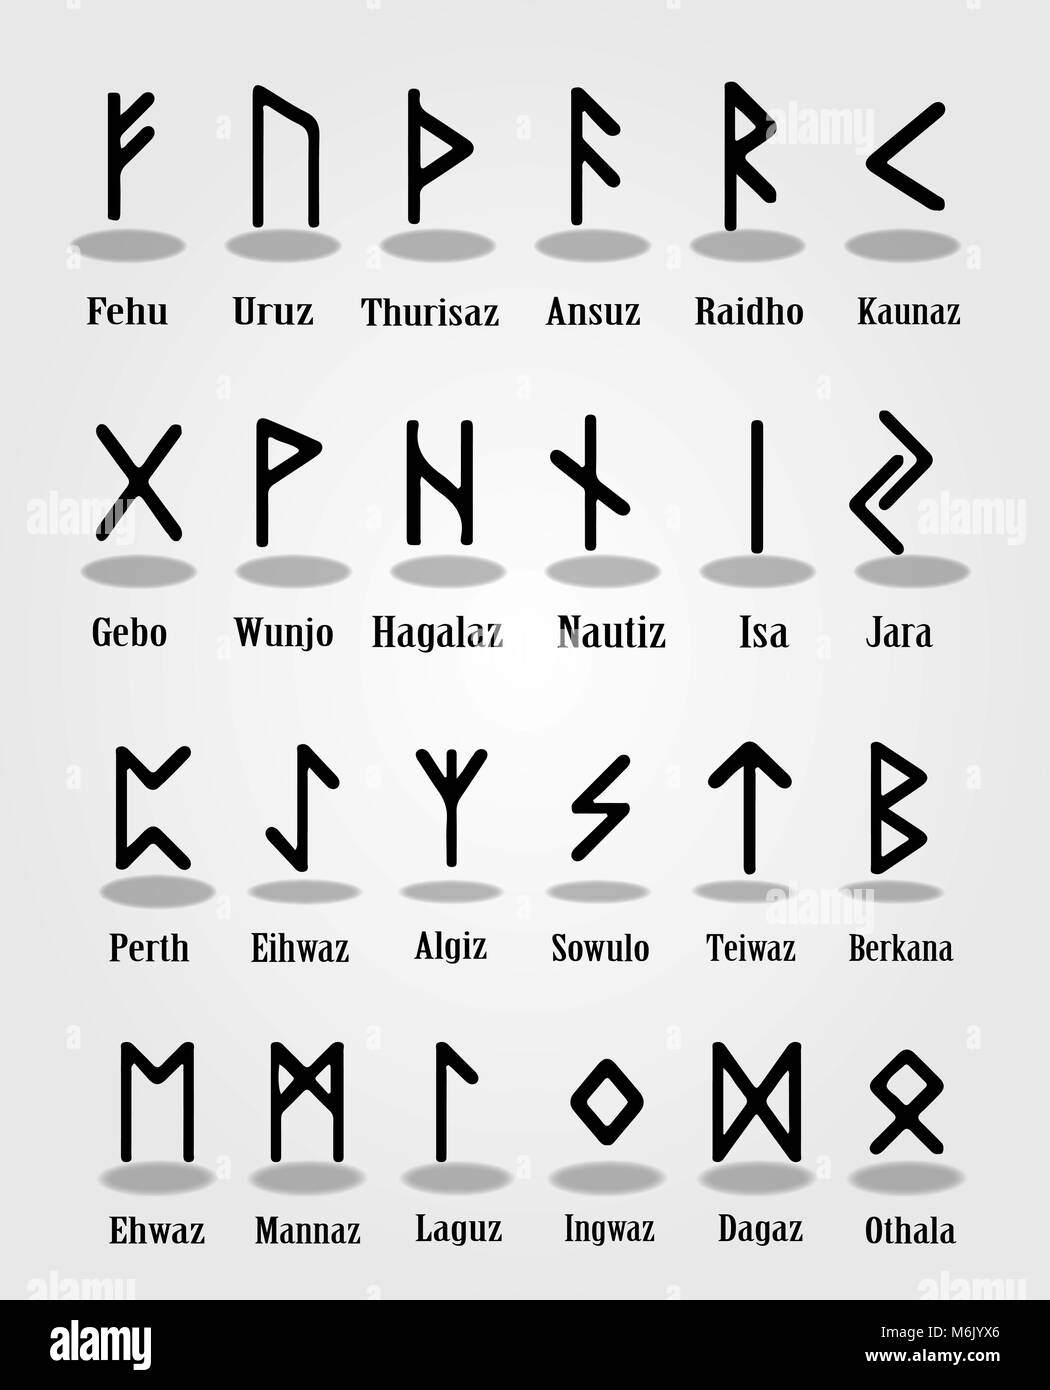 ancient rune alphabet with names of runes and transliteration to latin. Vector illustration,signs, symbols. - Stock Image